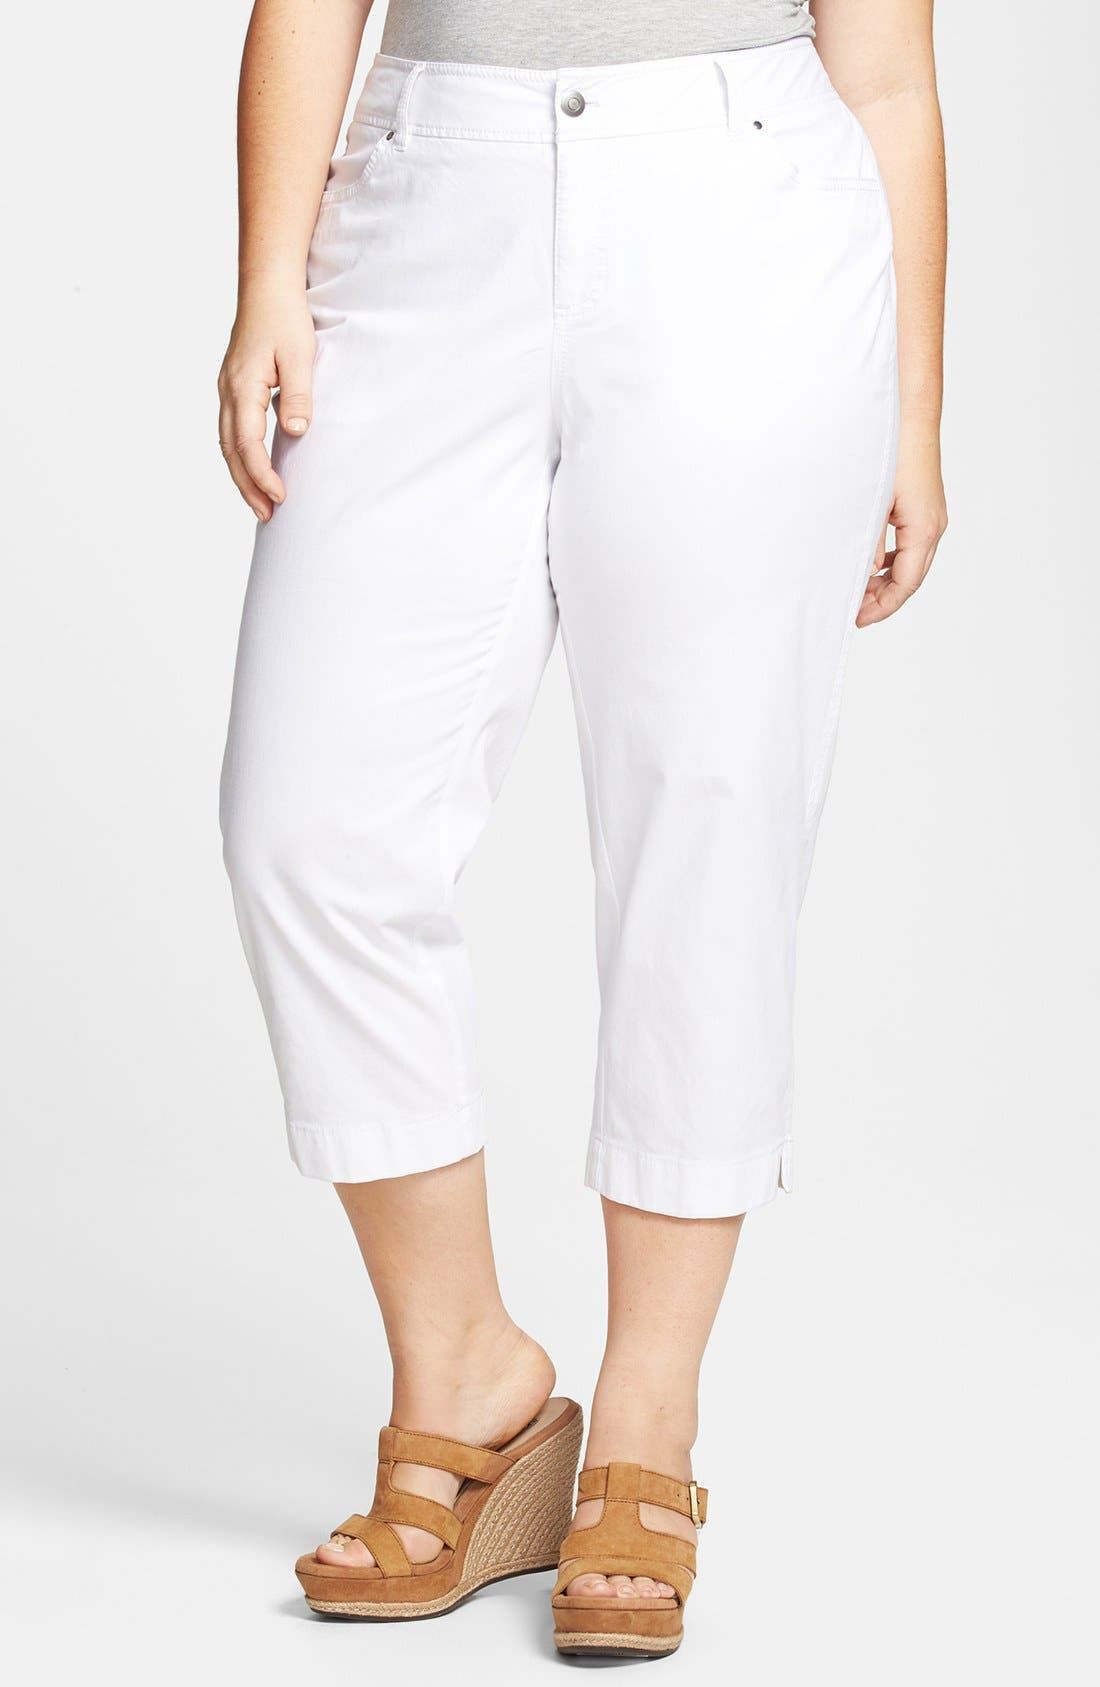 Alternate Image 1 Selected - Sejour 'Megan' Stretch Cotton Crop Pants (Plus Size)